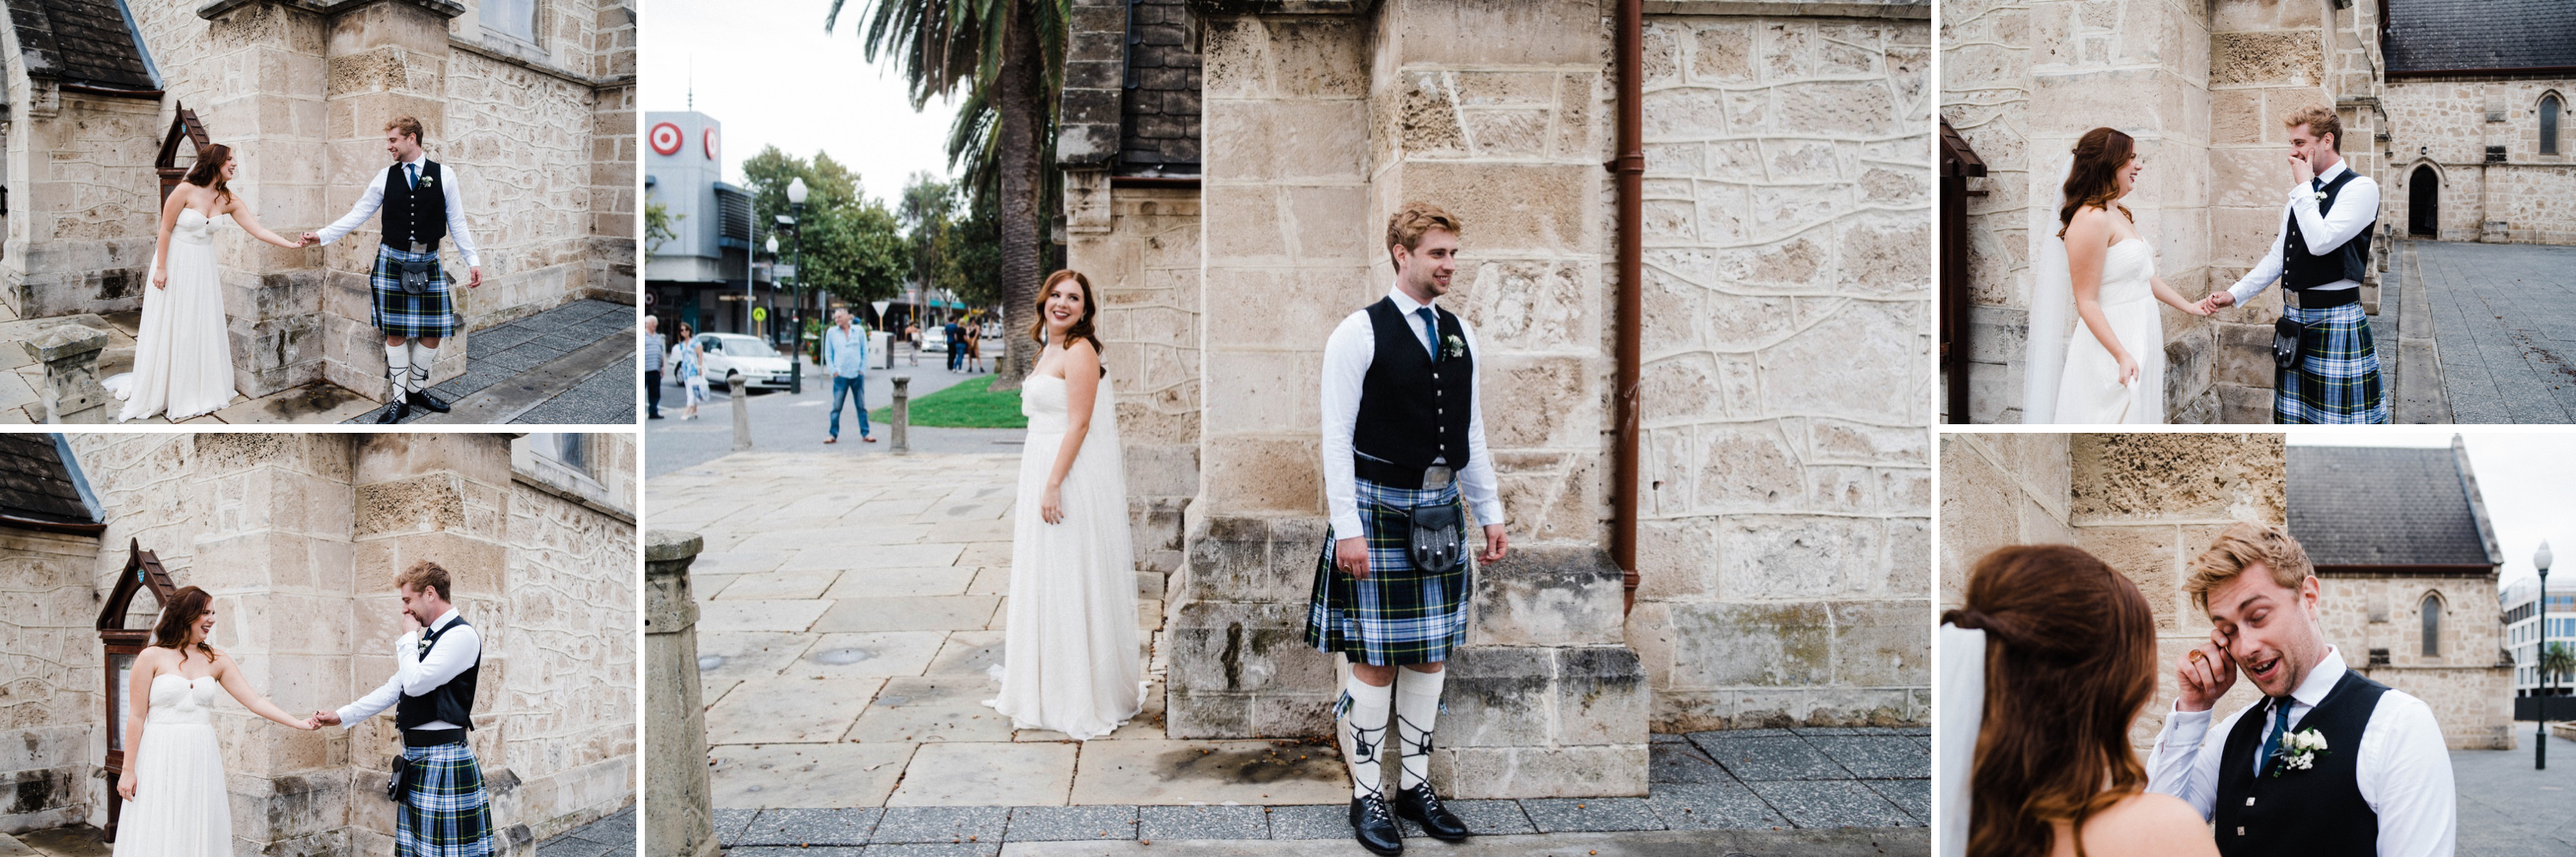 A collage of Documentary Wedding Photos of the bride & groom's first look outside of St John's Anglican Church in Fremantle.